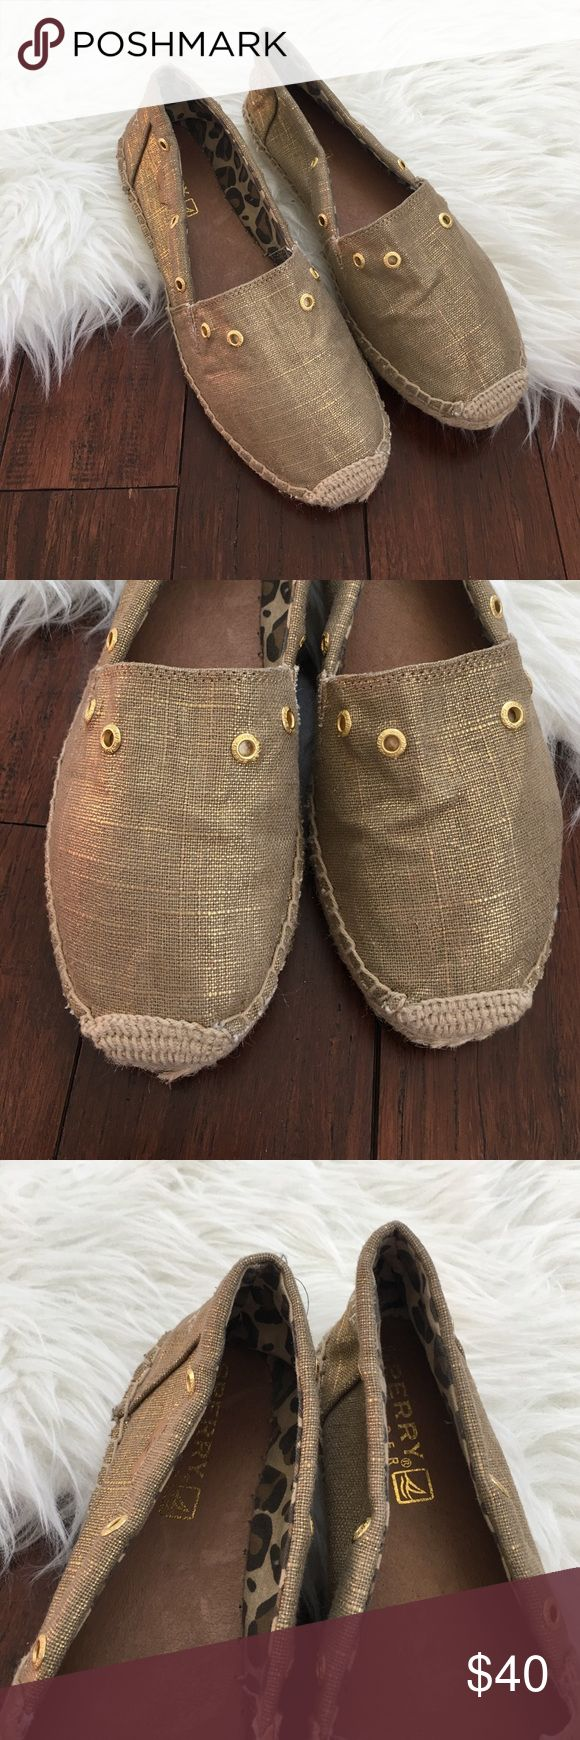 Sperry Top Sider Gold Metallic Espadrille Flats Excellent condition. Only worn out one time. Fabric upper. Leather insoles. Absolutely perfect for summer! Sperry Top-Sider Shoes Espadrilles